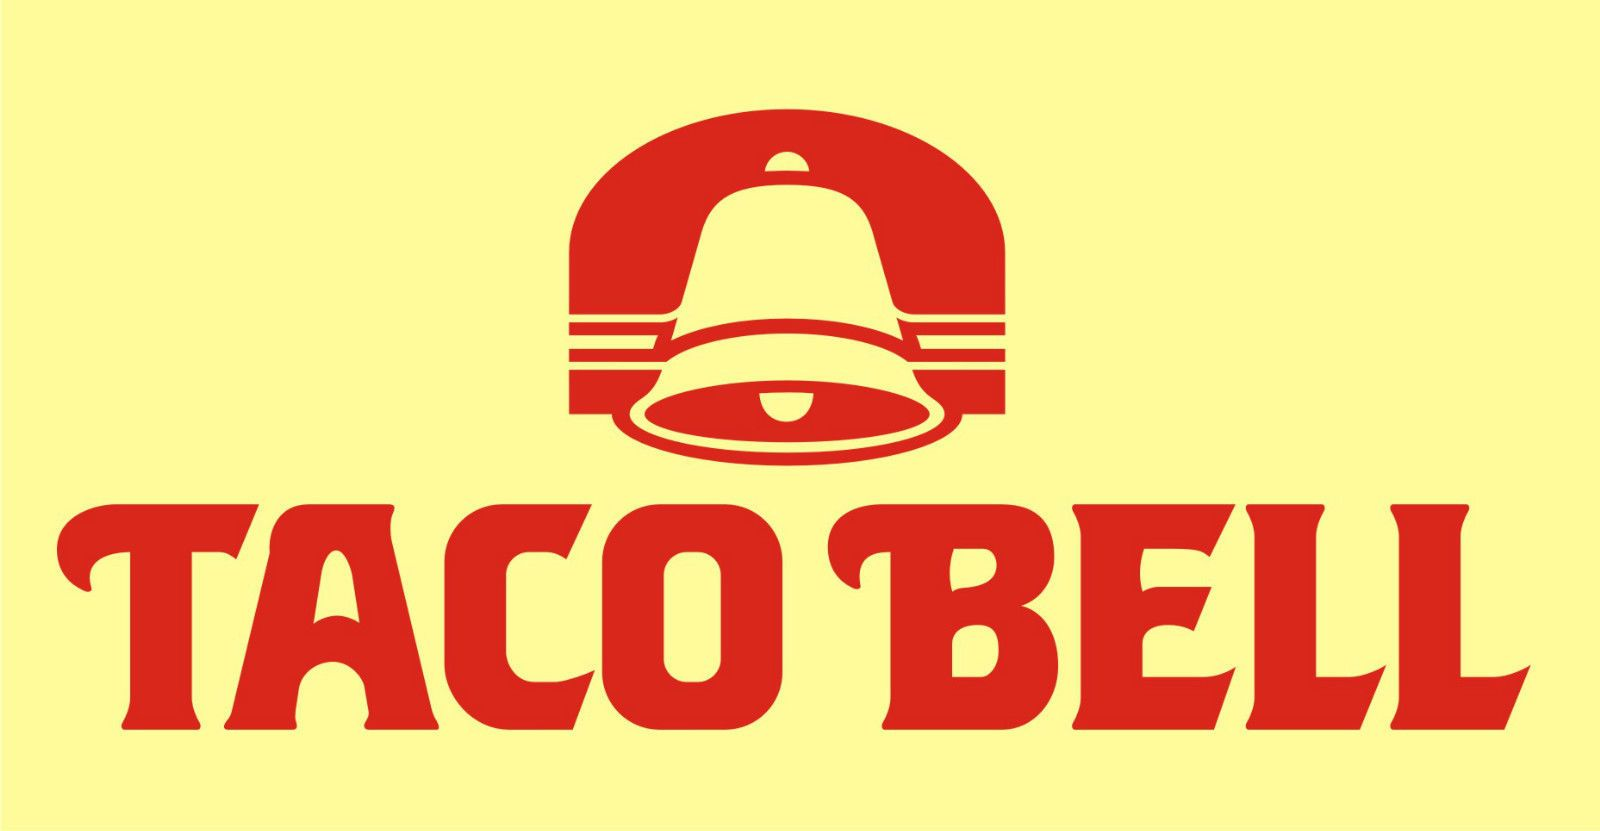 taco bell retro 70 s 80 s fast food mexican restaurant junk tee rh pinterest com 80s Fashion Brand Logos Apparel Logos with an a of the 80s